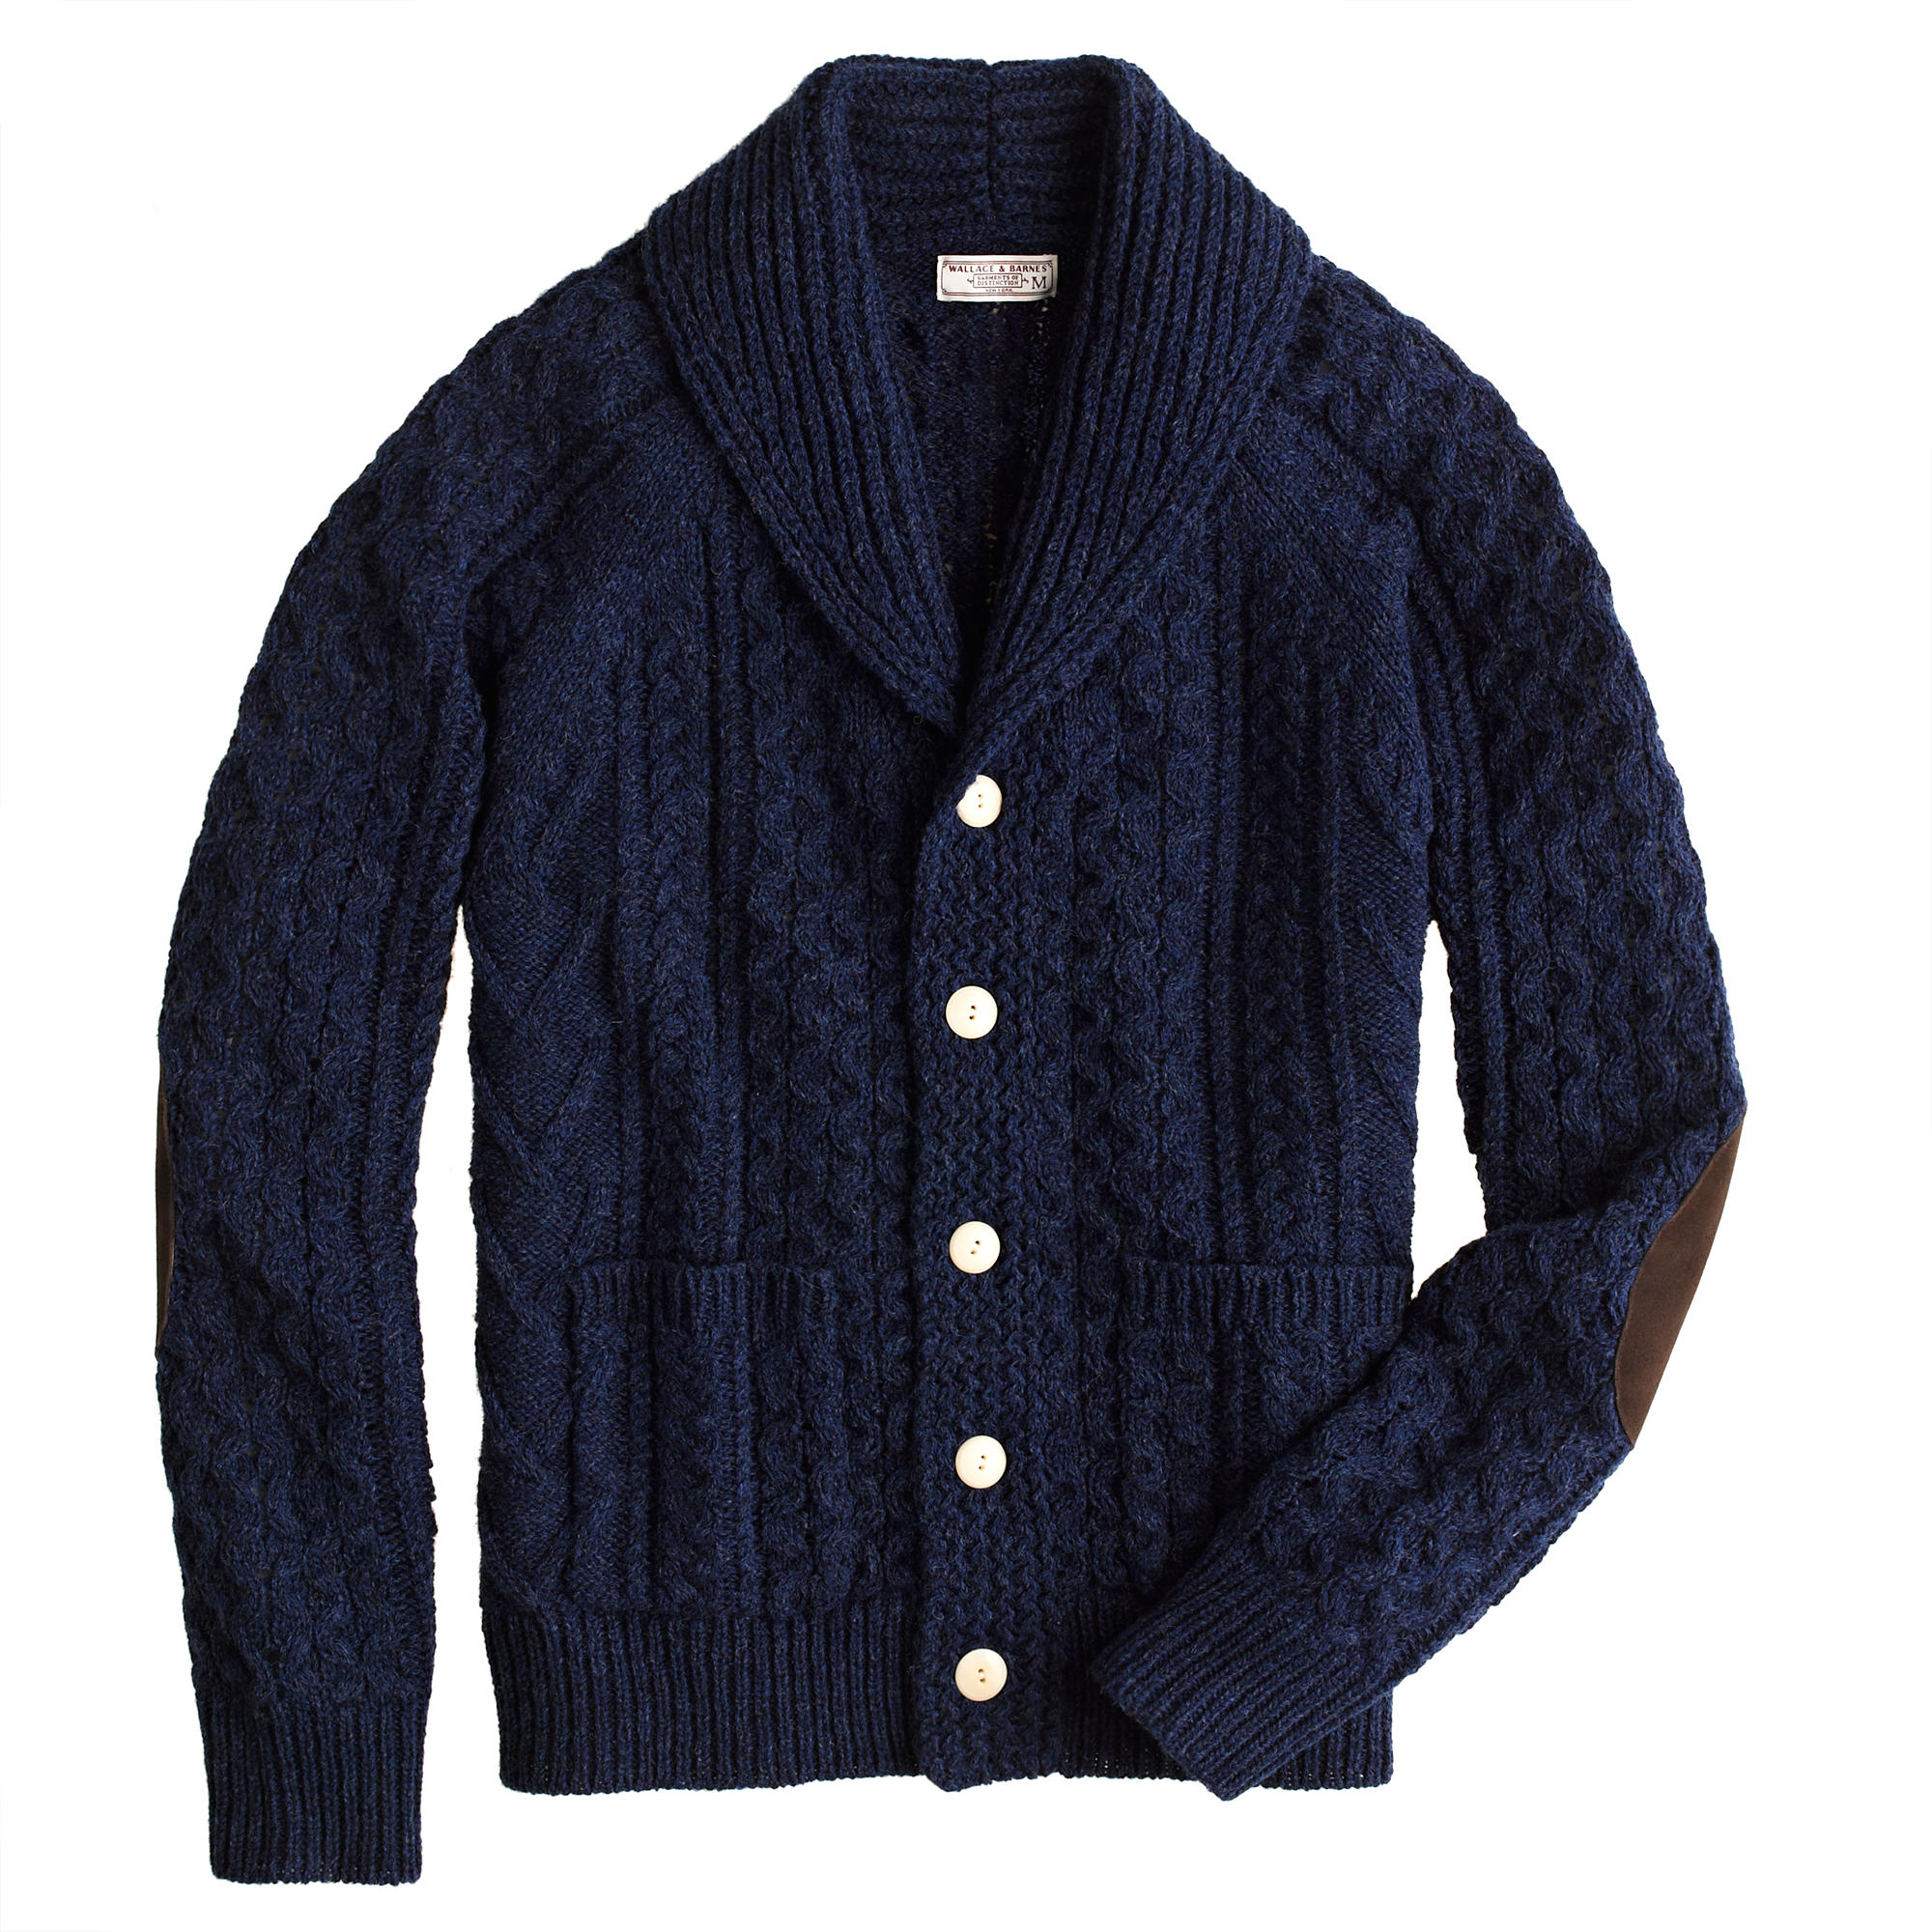 Wallace & Barnes Cable Cardigan :